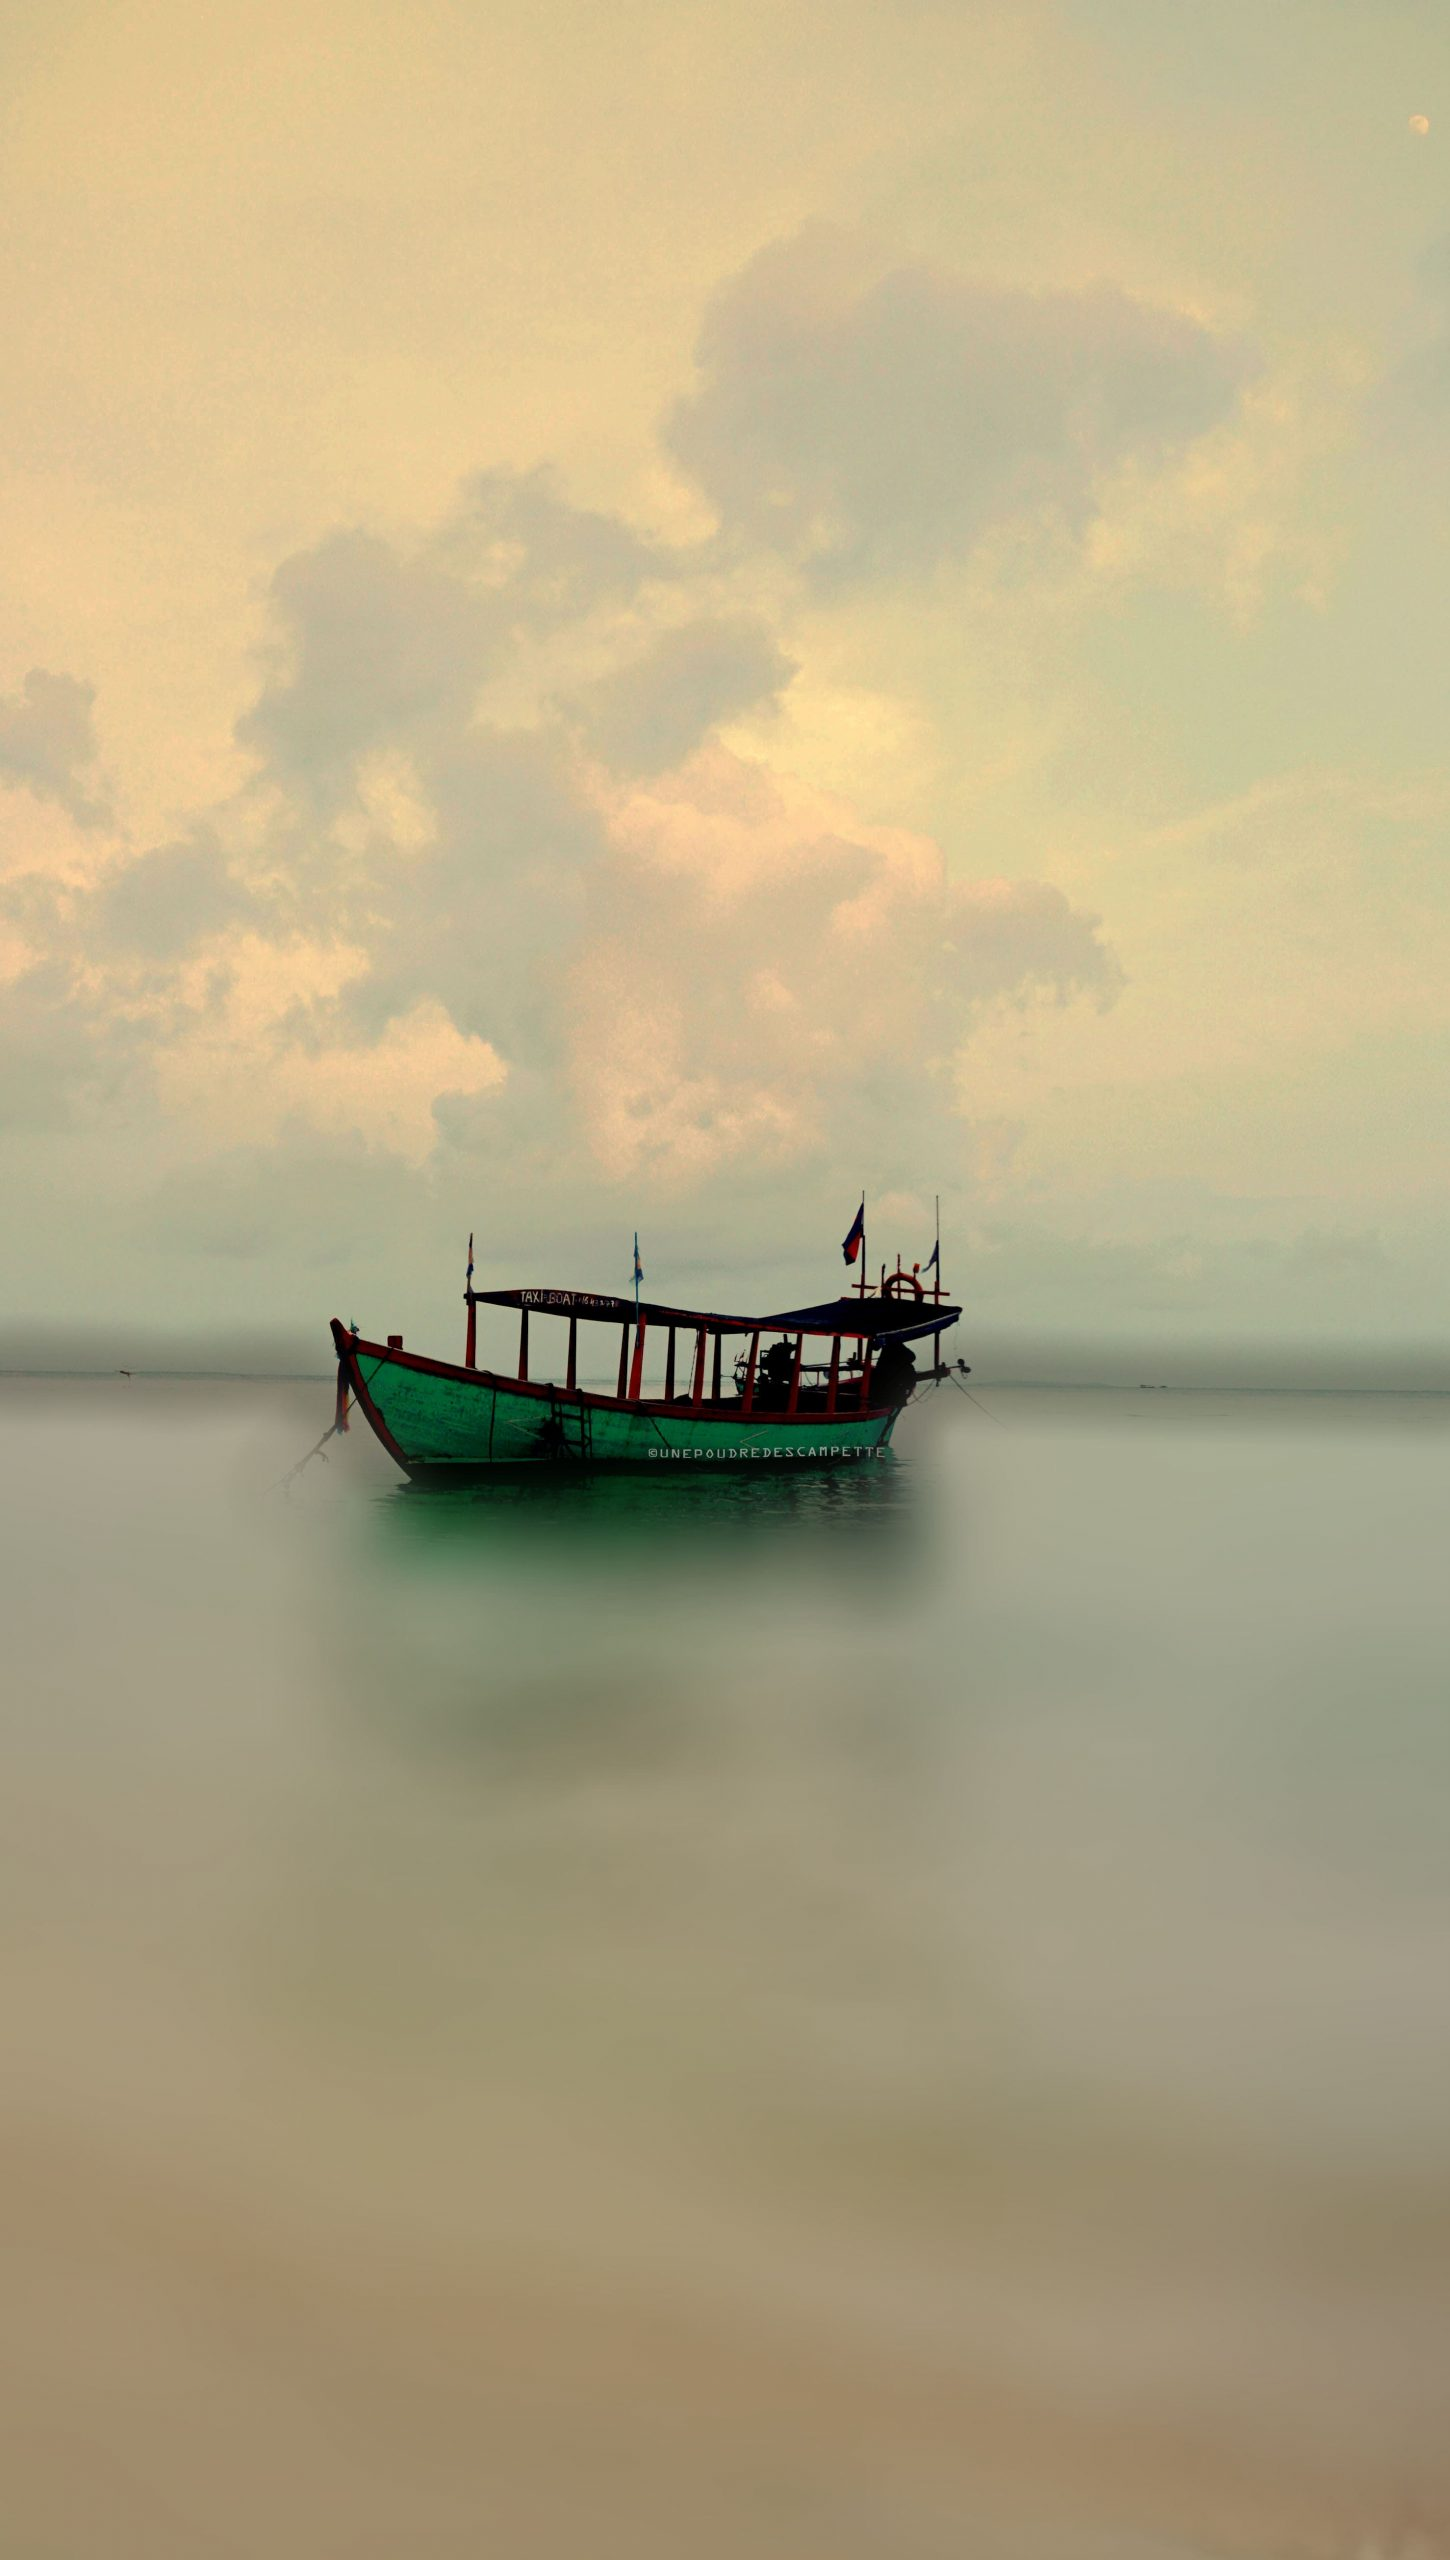 Solo_travel_photography_blog_travel_gallery